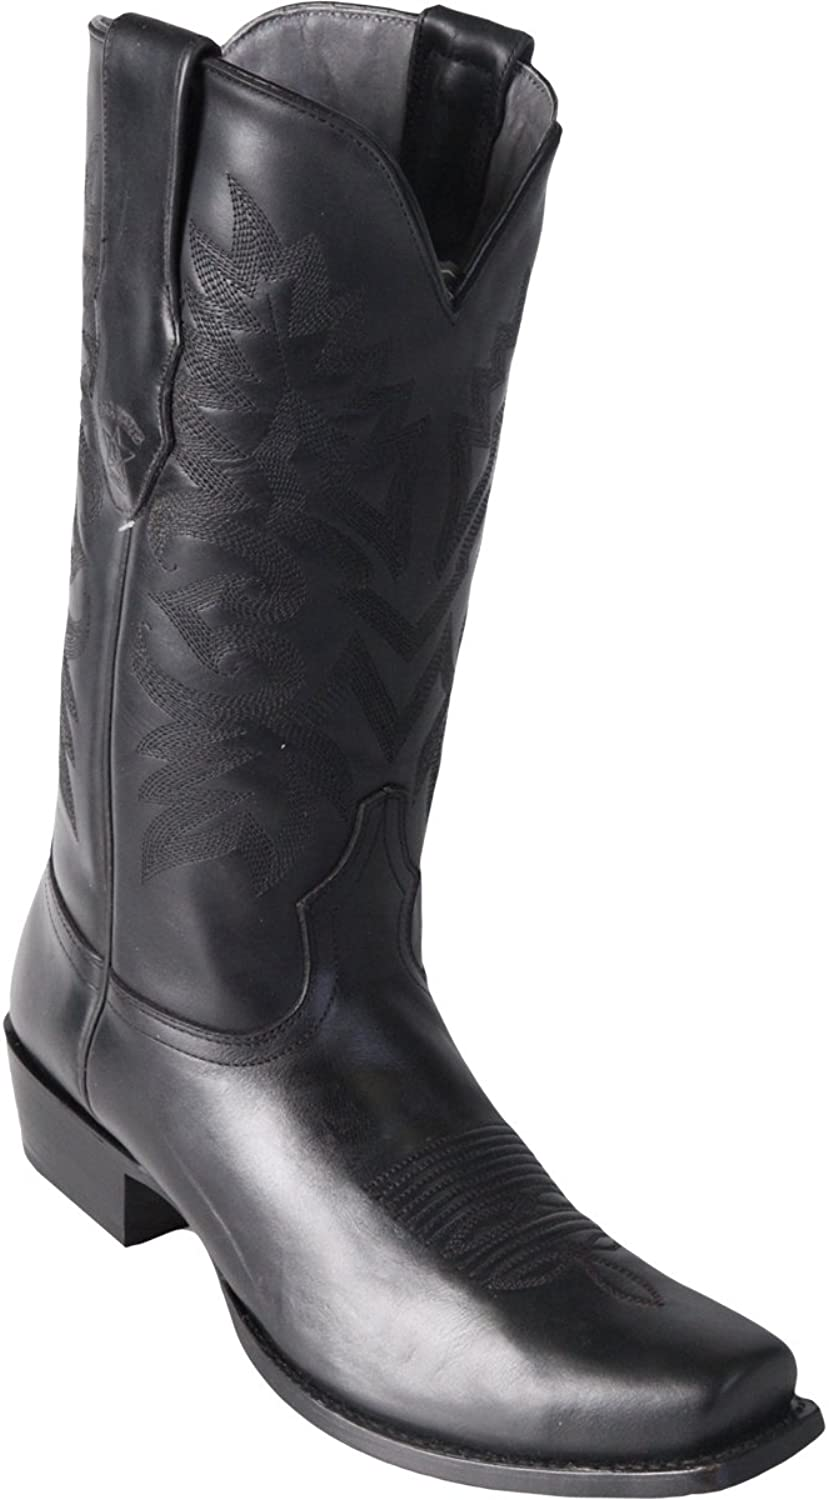 Los Altos boots Original Black Leather Square-Toe Boot